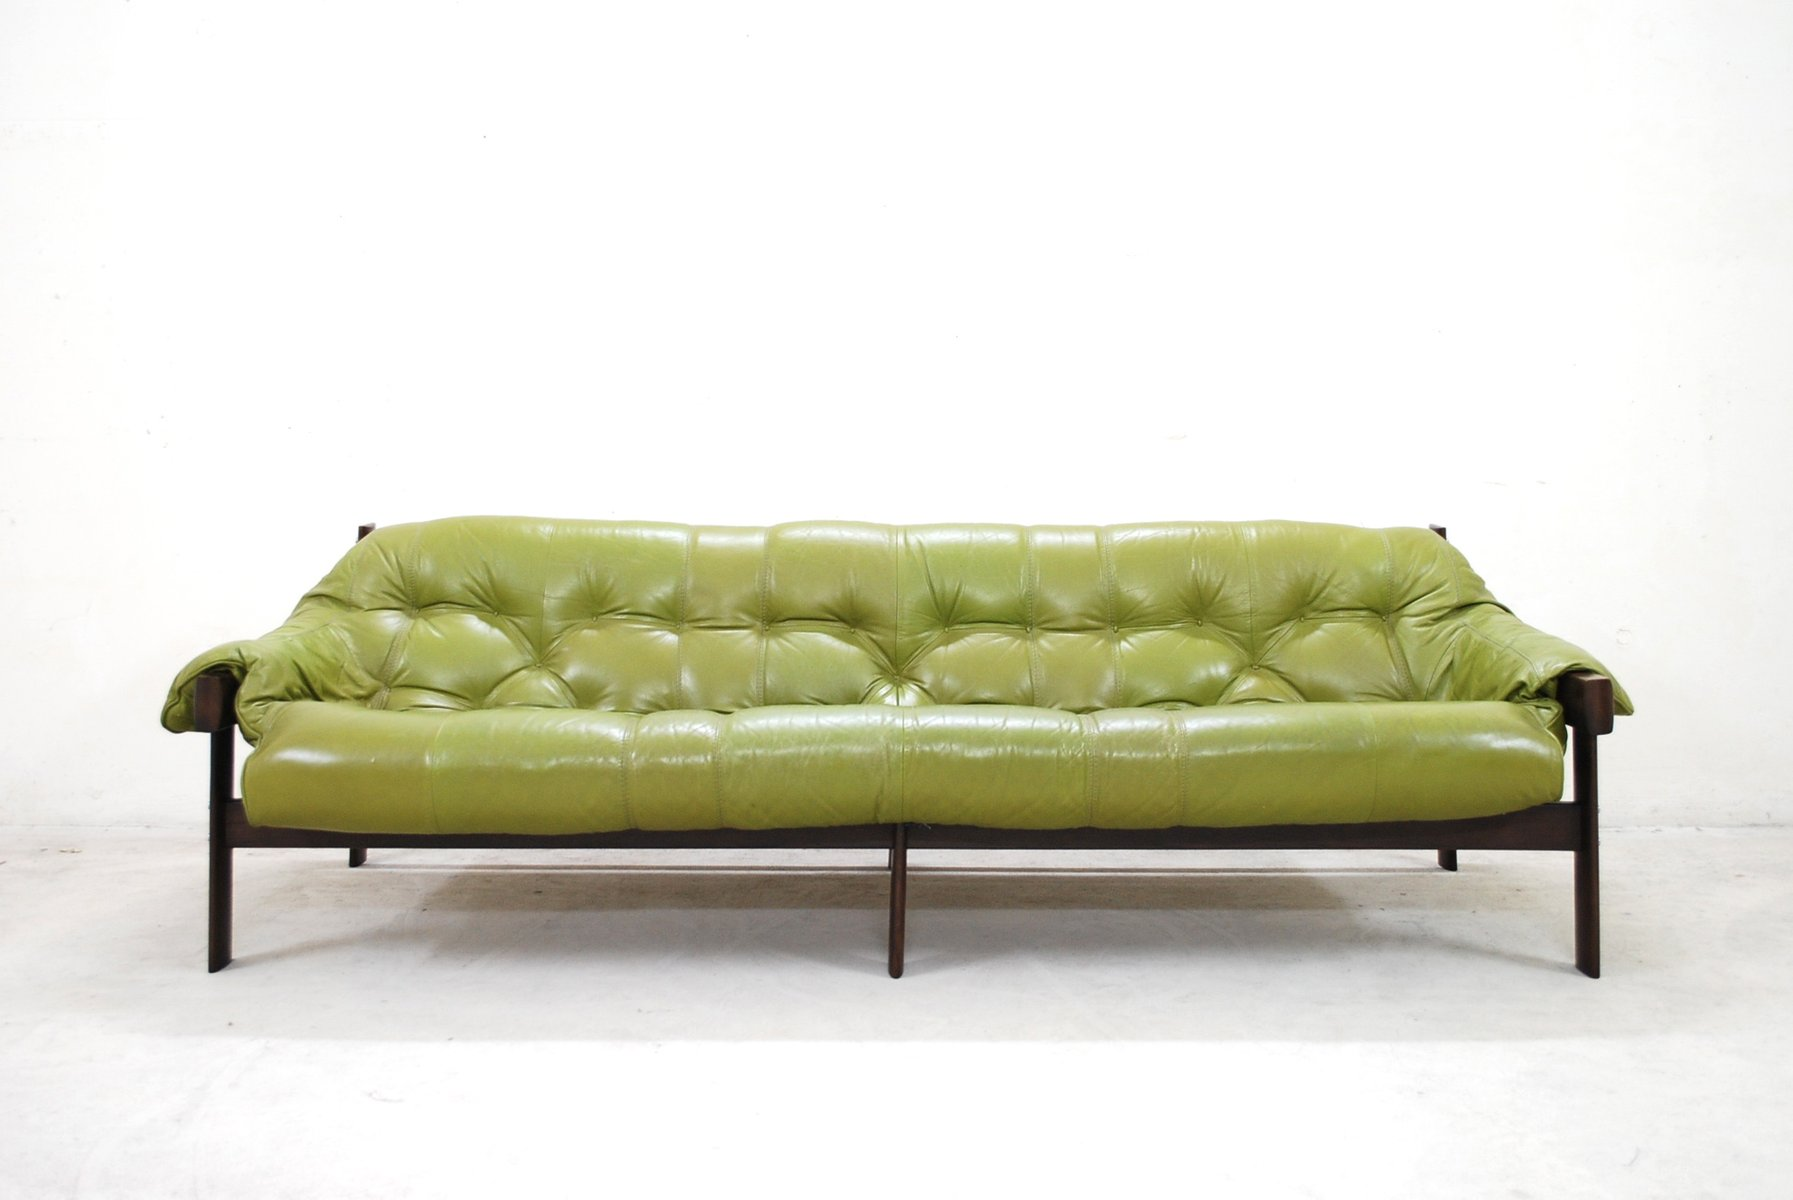 Model MP 041 Lime Green Leather Sofa from Percival Lafer 1961 for